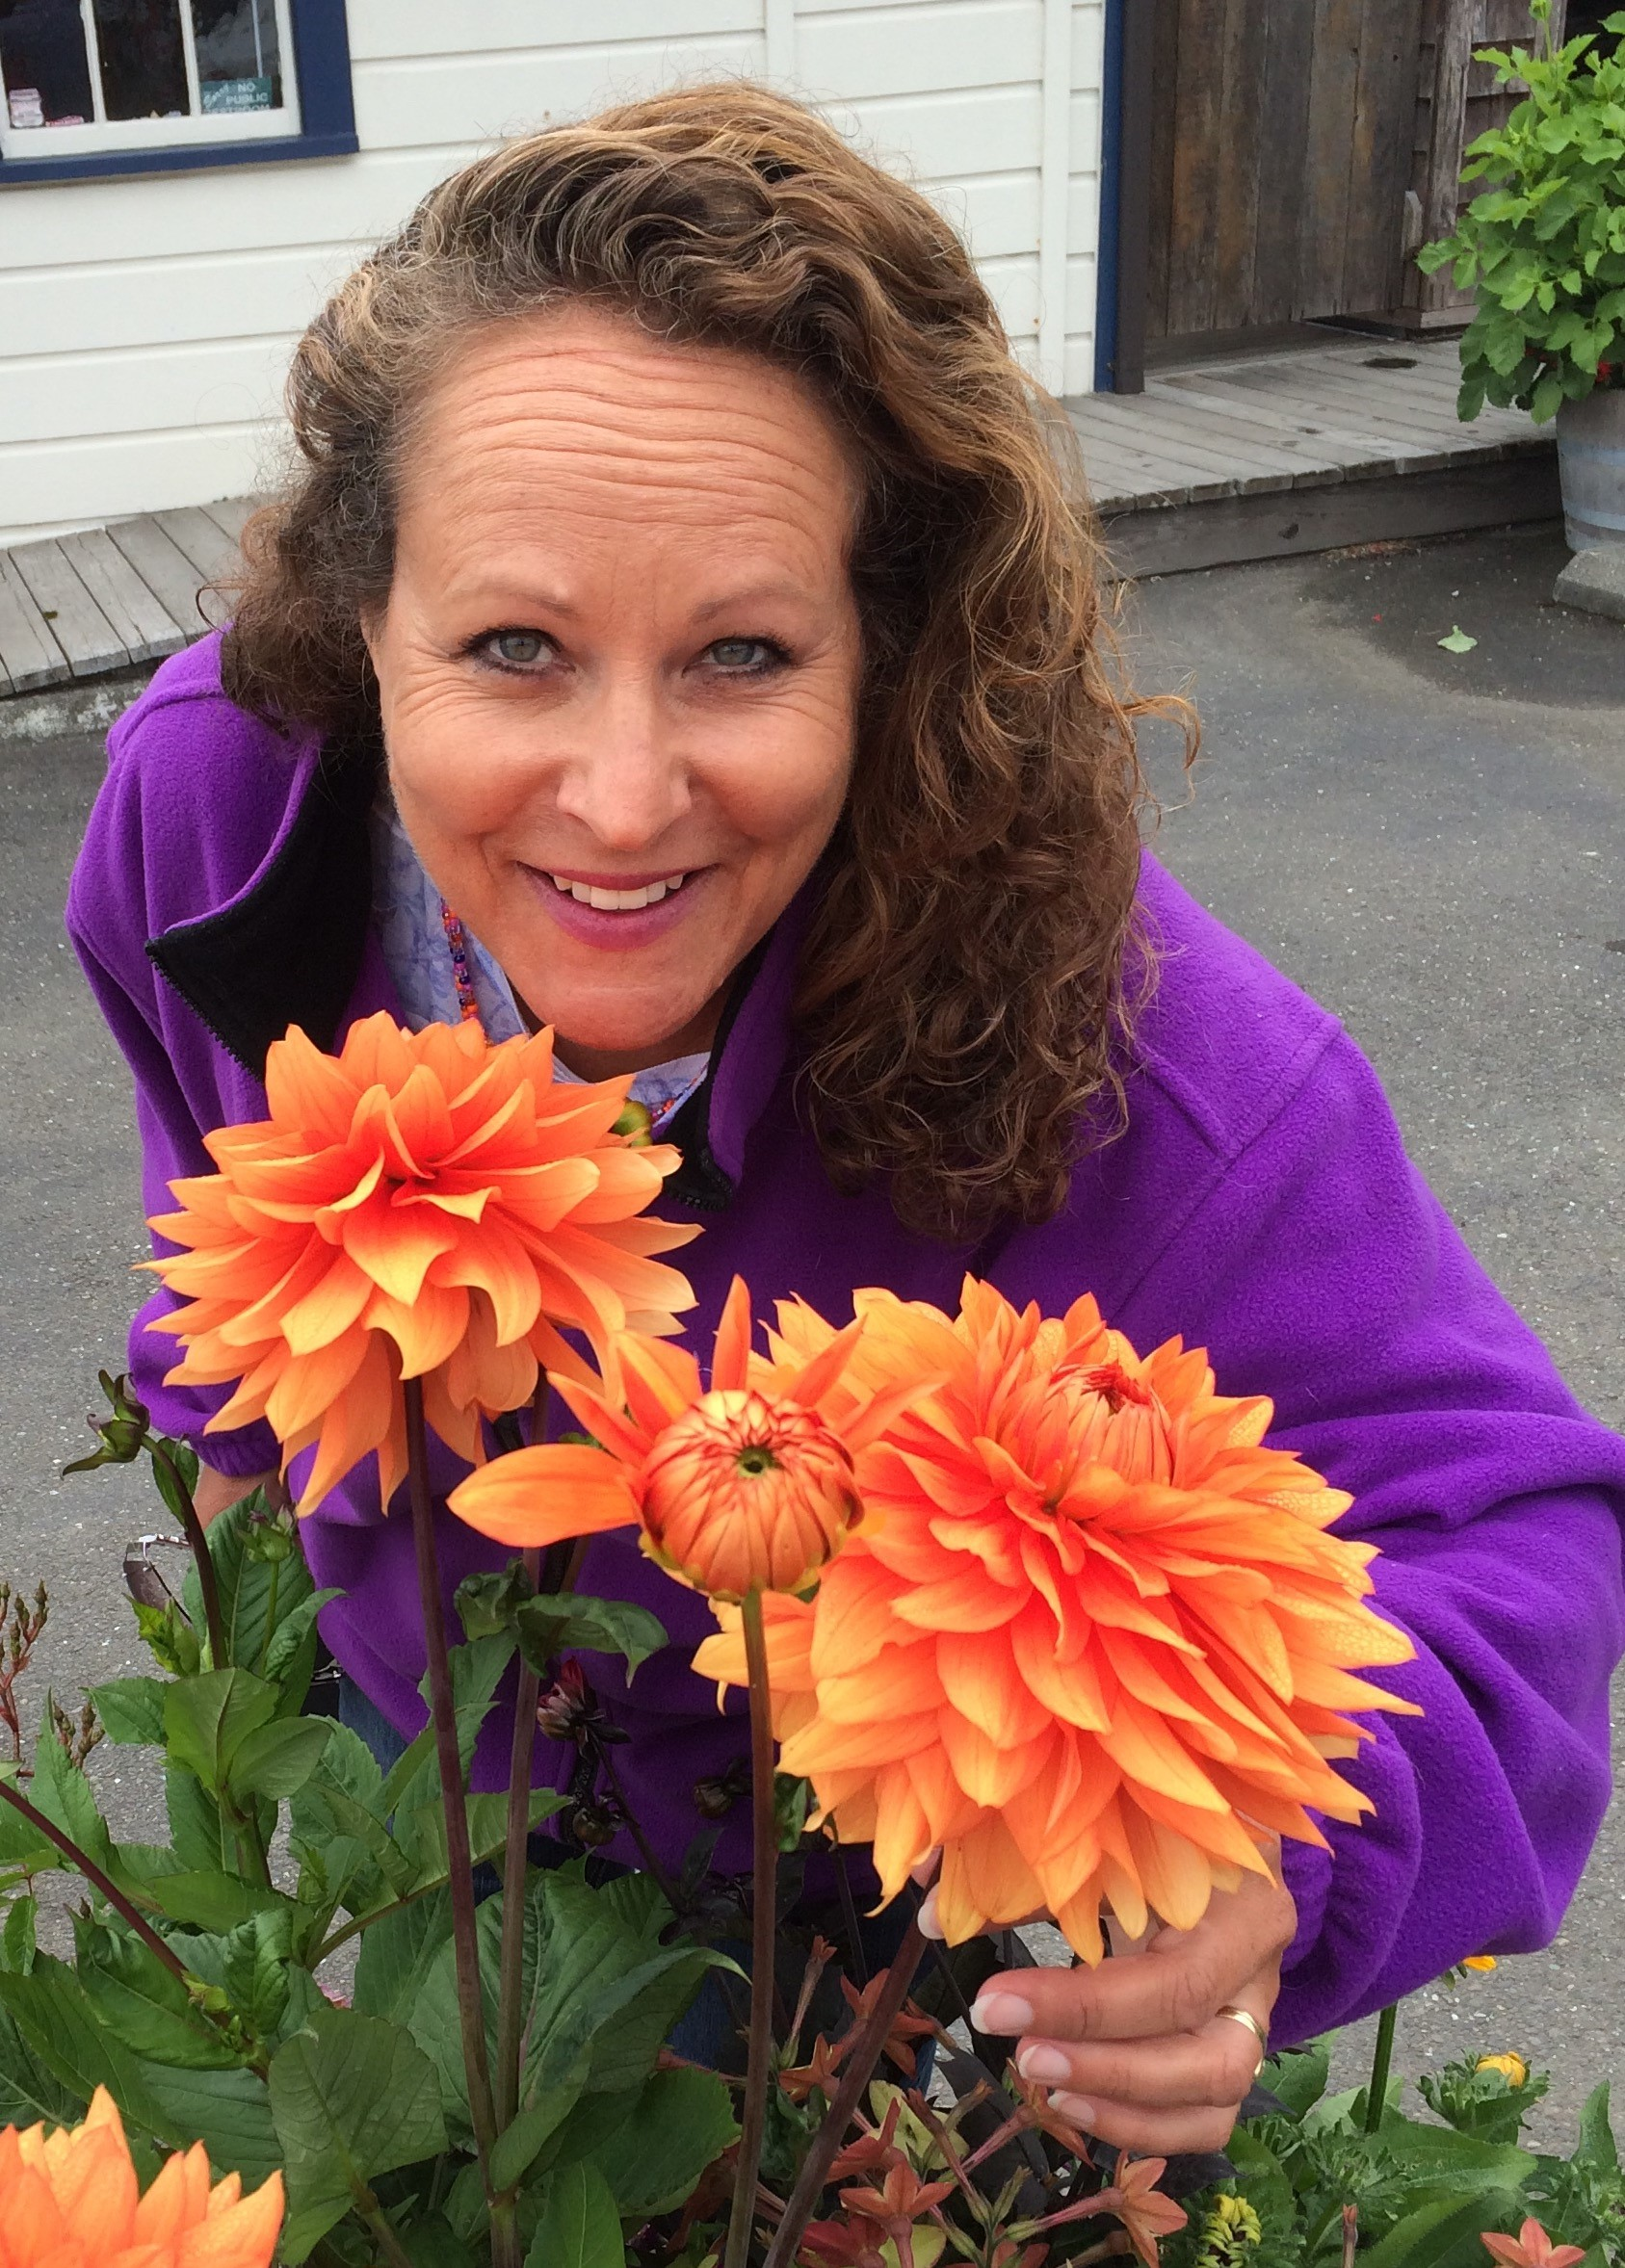 Michelle Boydstun and Flowers